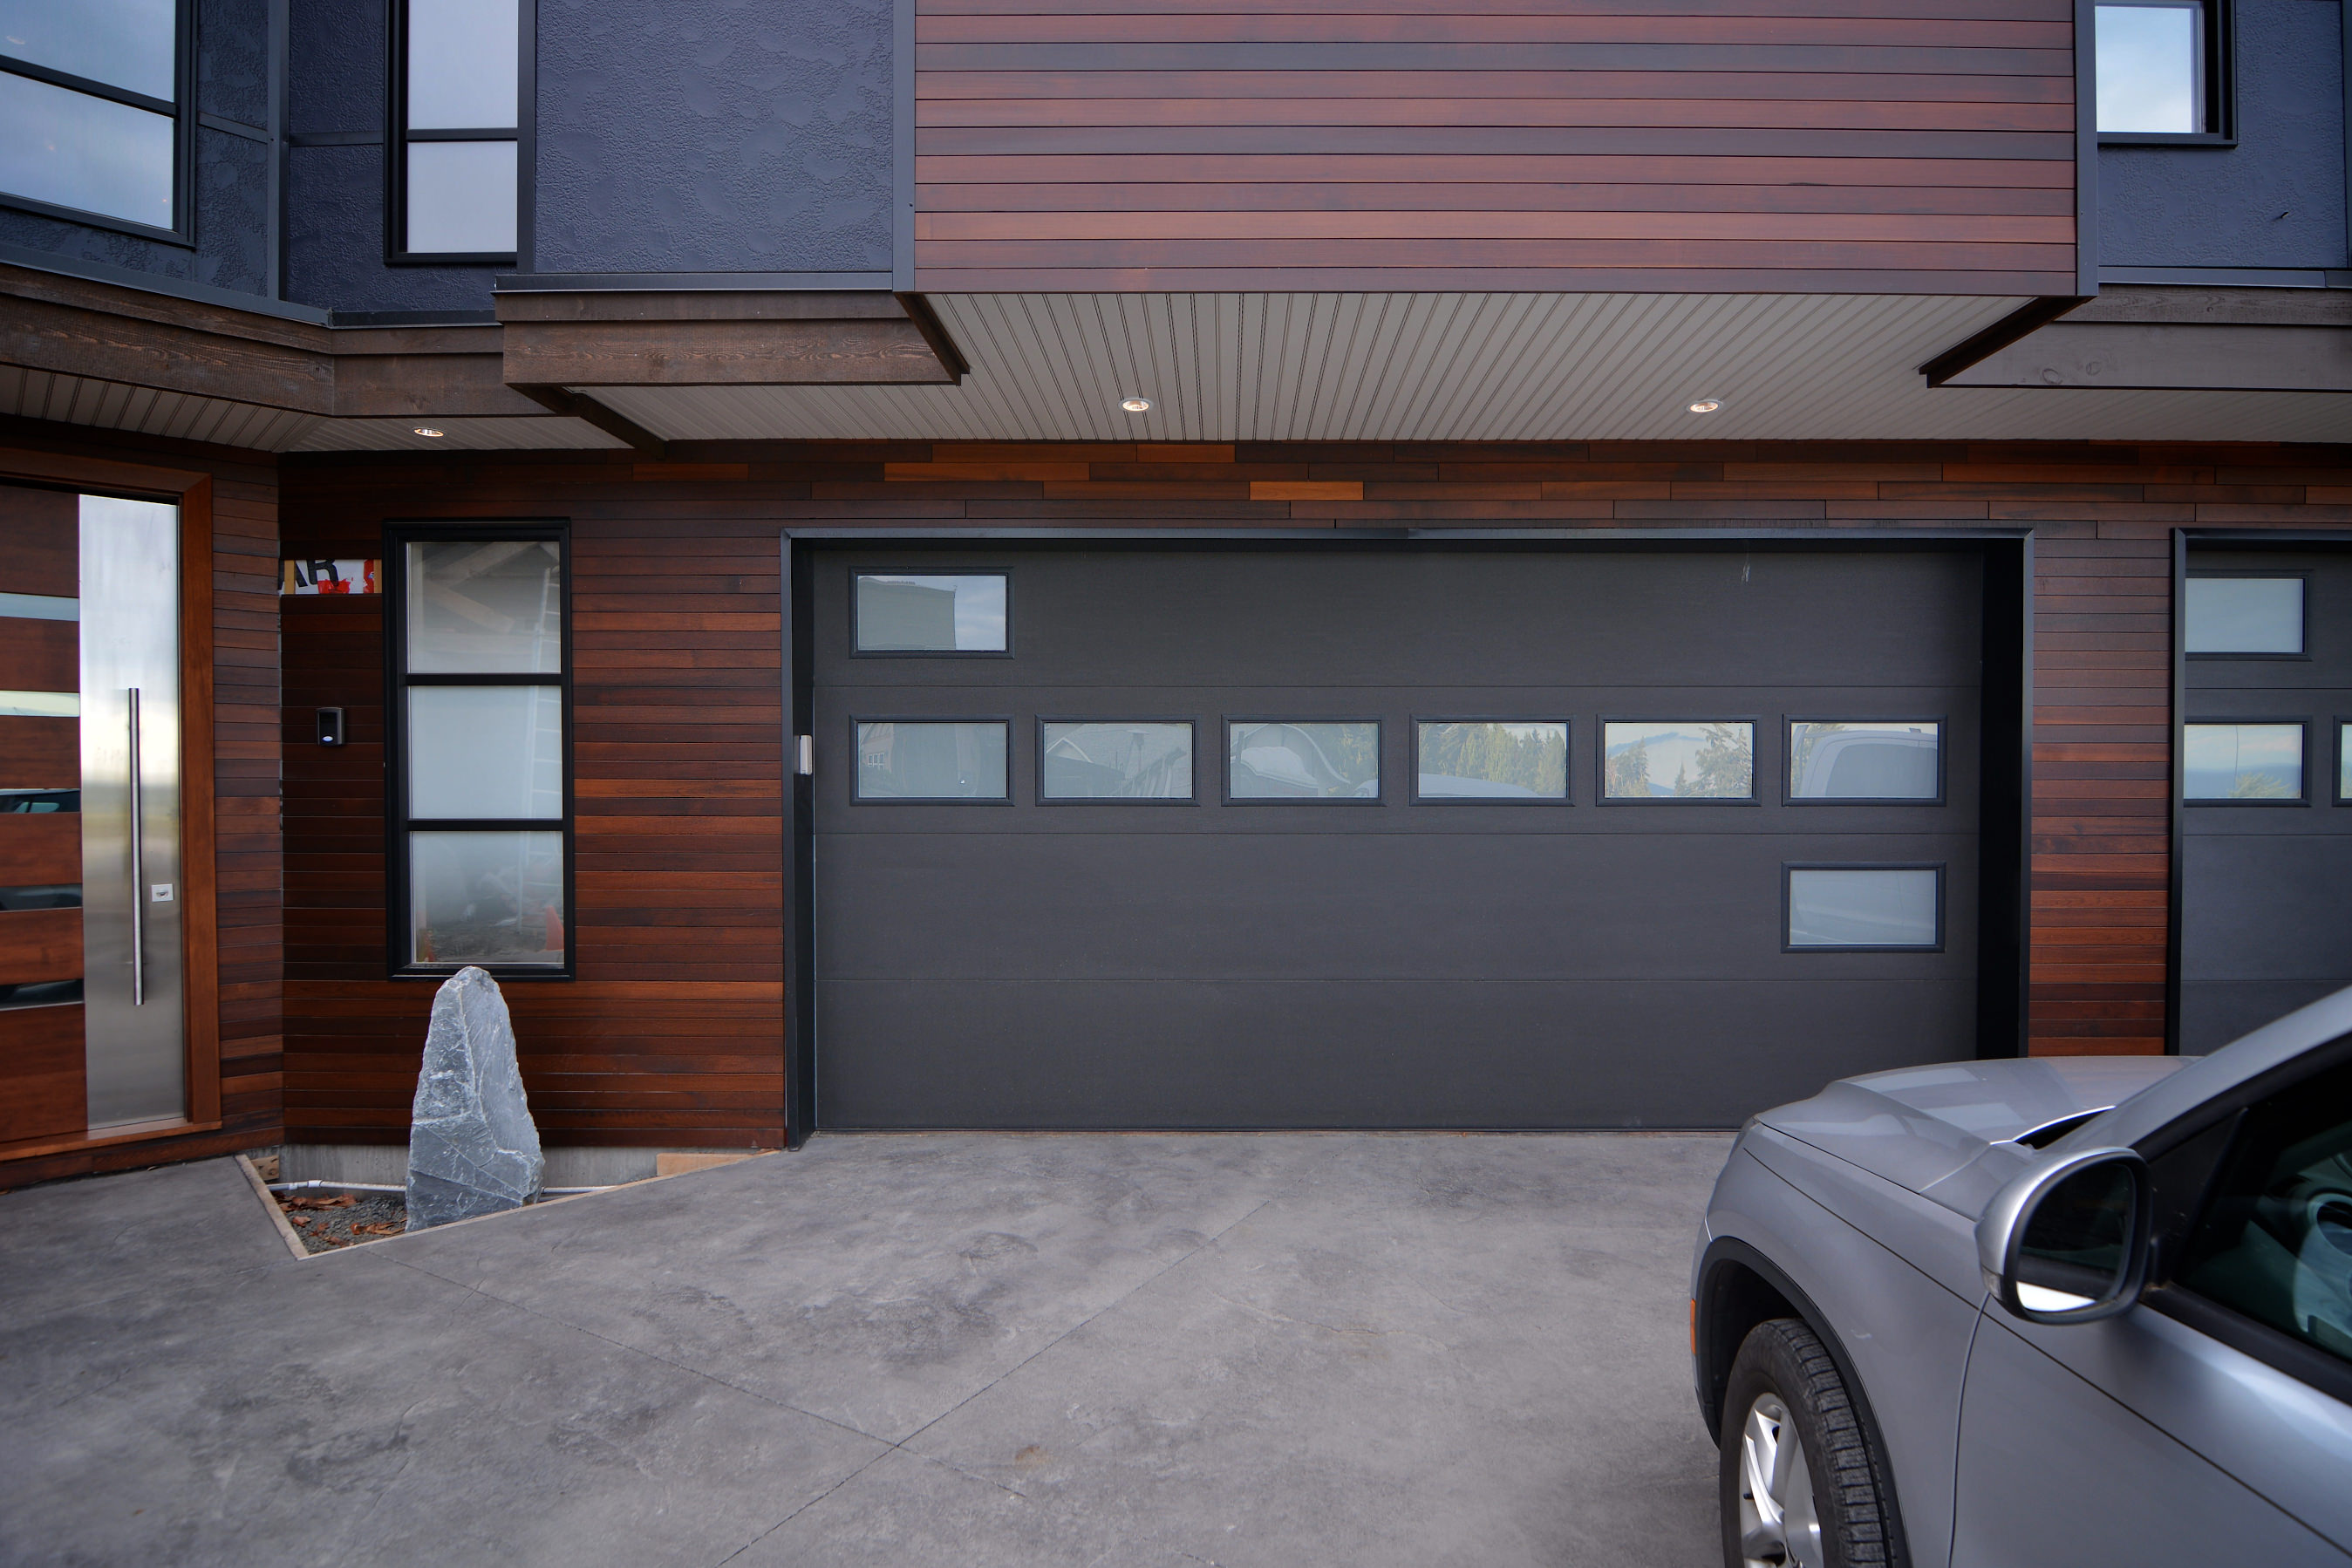 Garage security victoria bc (1)